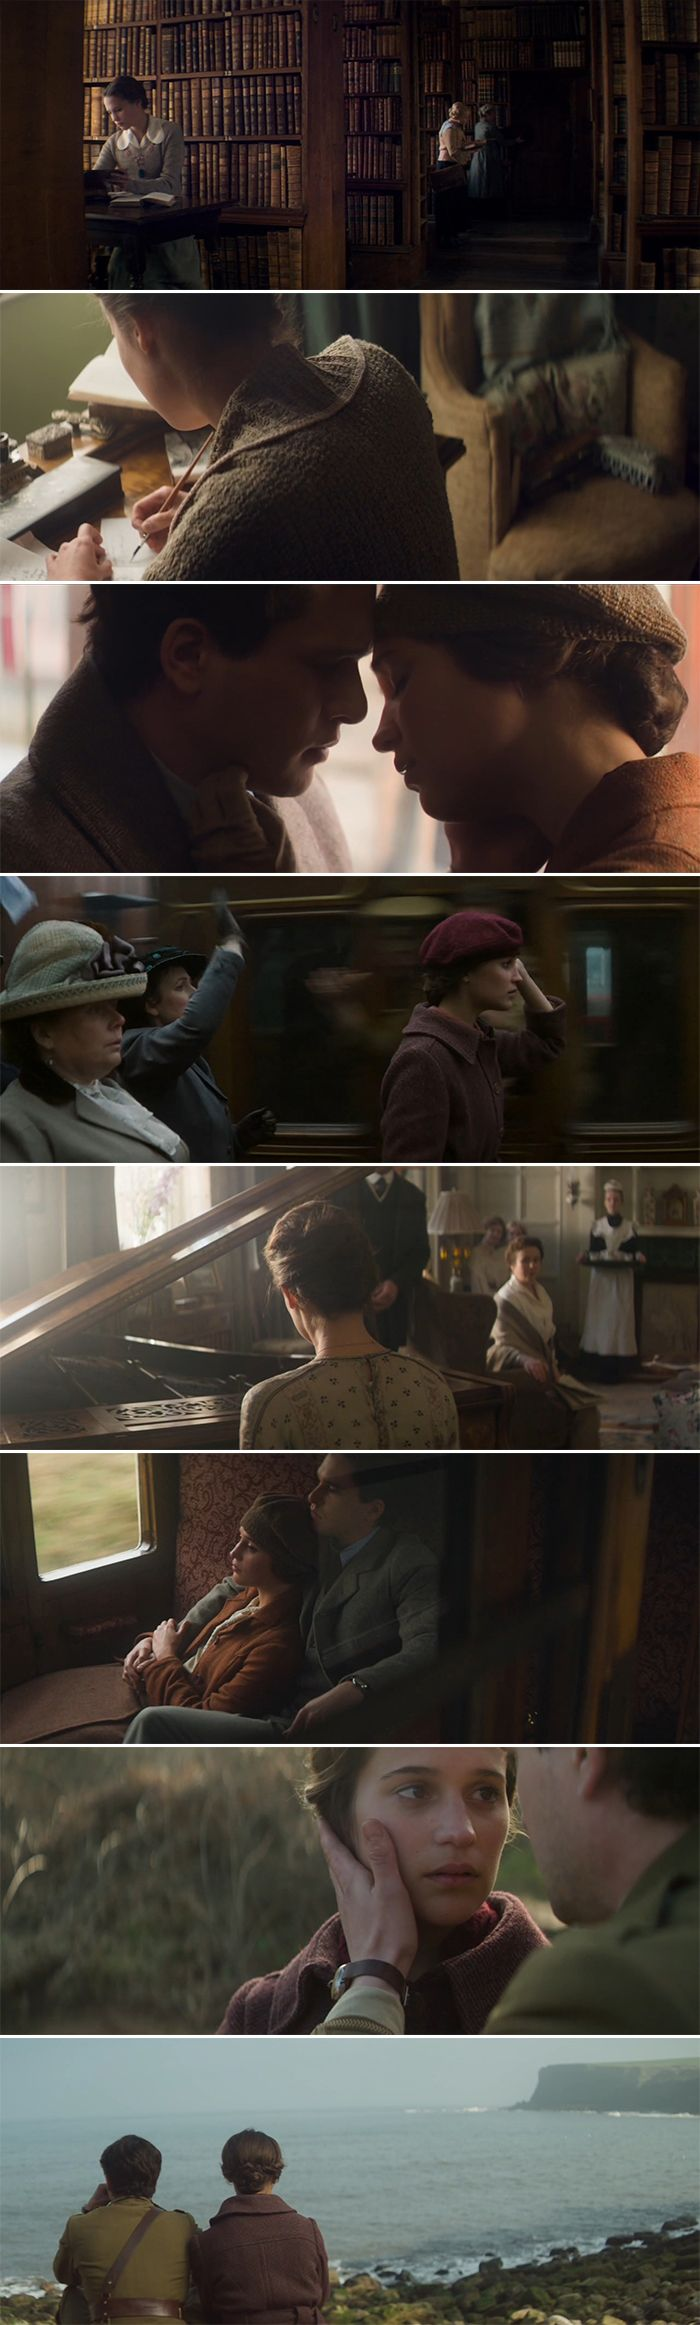 Absolutely incredible cinematography in  Testament of Youth  Each frame feels like a poem.  sc 1 st  Pinterest & 513 best Cinematography 101 images on Pinterest | Film stills ... azcodes.com